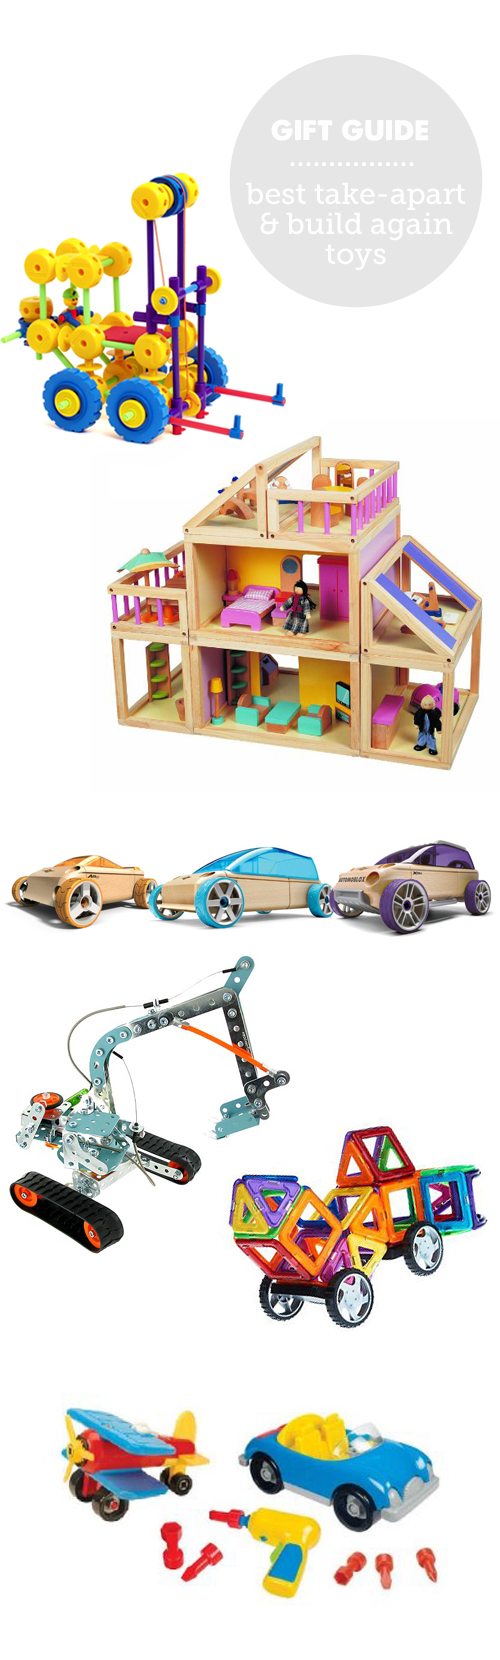 Best Building Toys For Kids : Mpmk gift guide best building construction toys